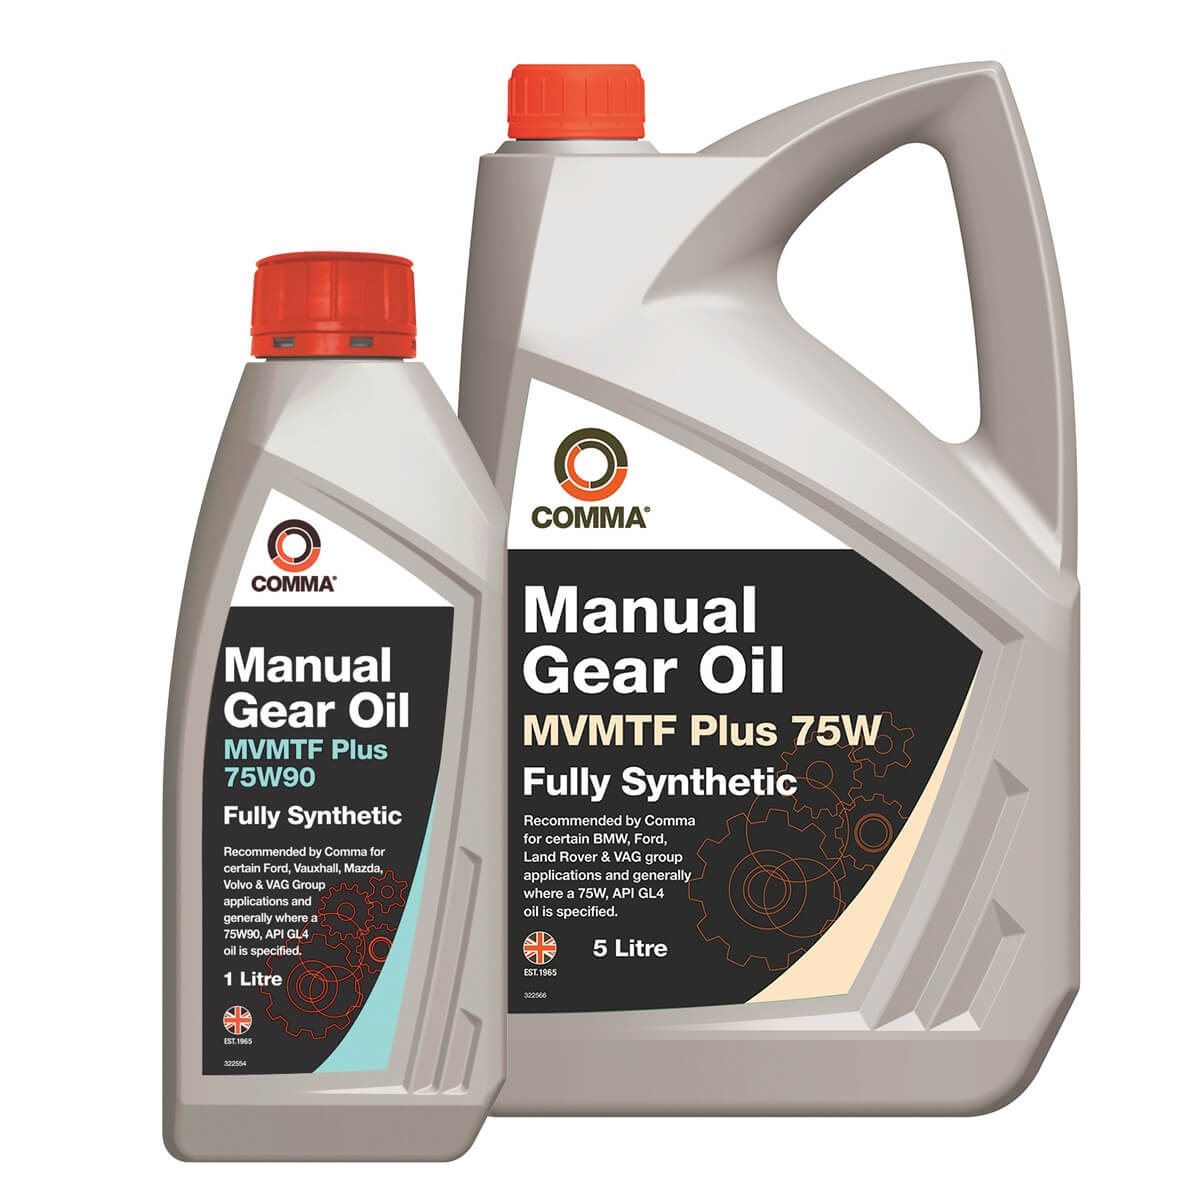 AUDI S6 Manual Transmission Oil